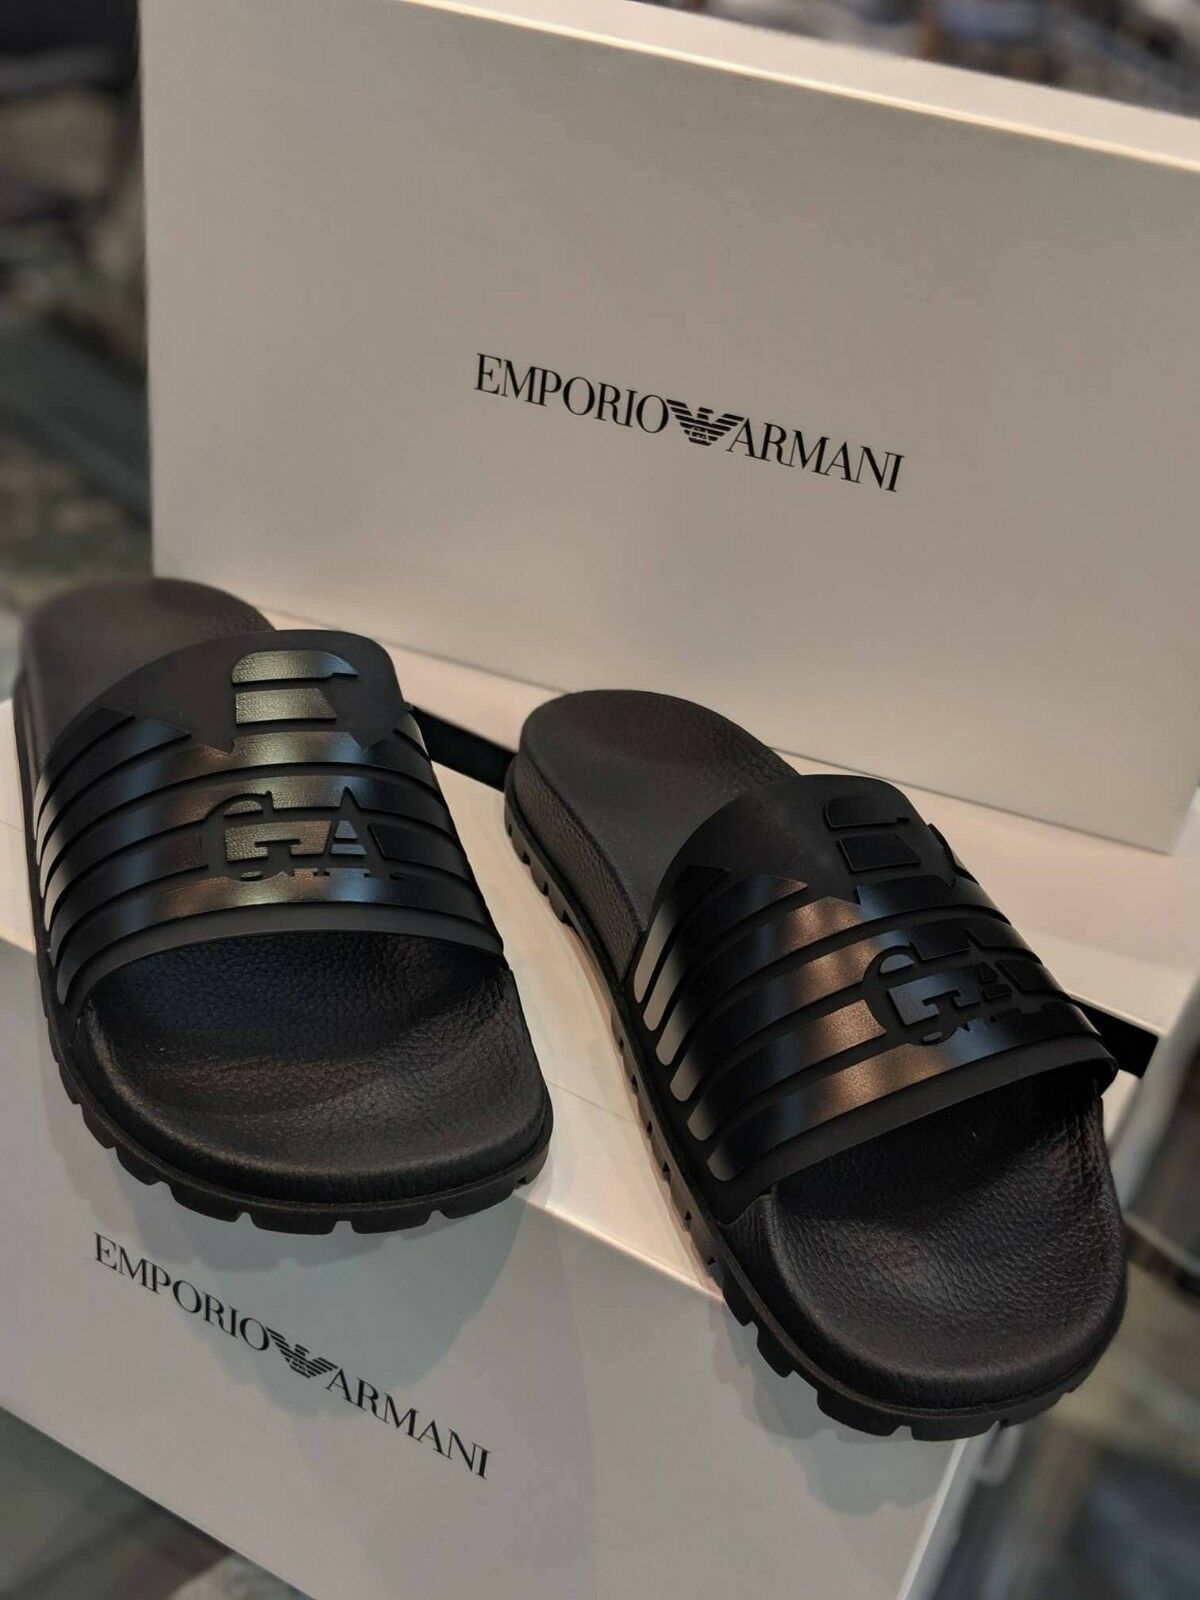 NWT EMPORIO ARMANI X4P077 XL273 POOL SLIDES BLACK 7 EU40 MADE ITALY EAGLE LOGO